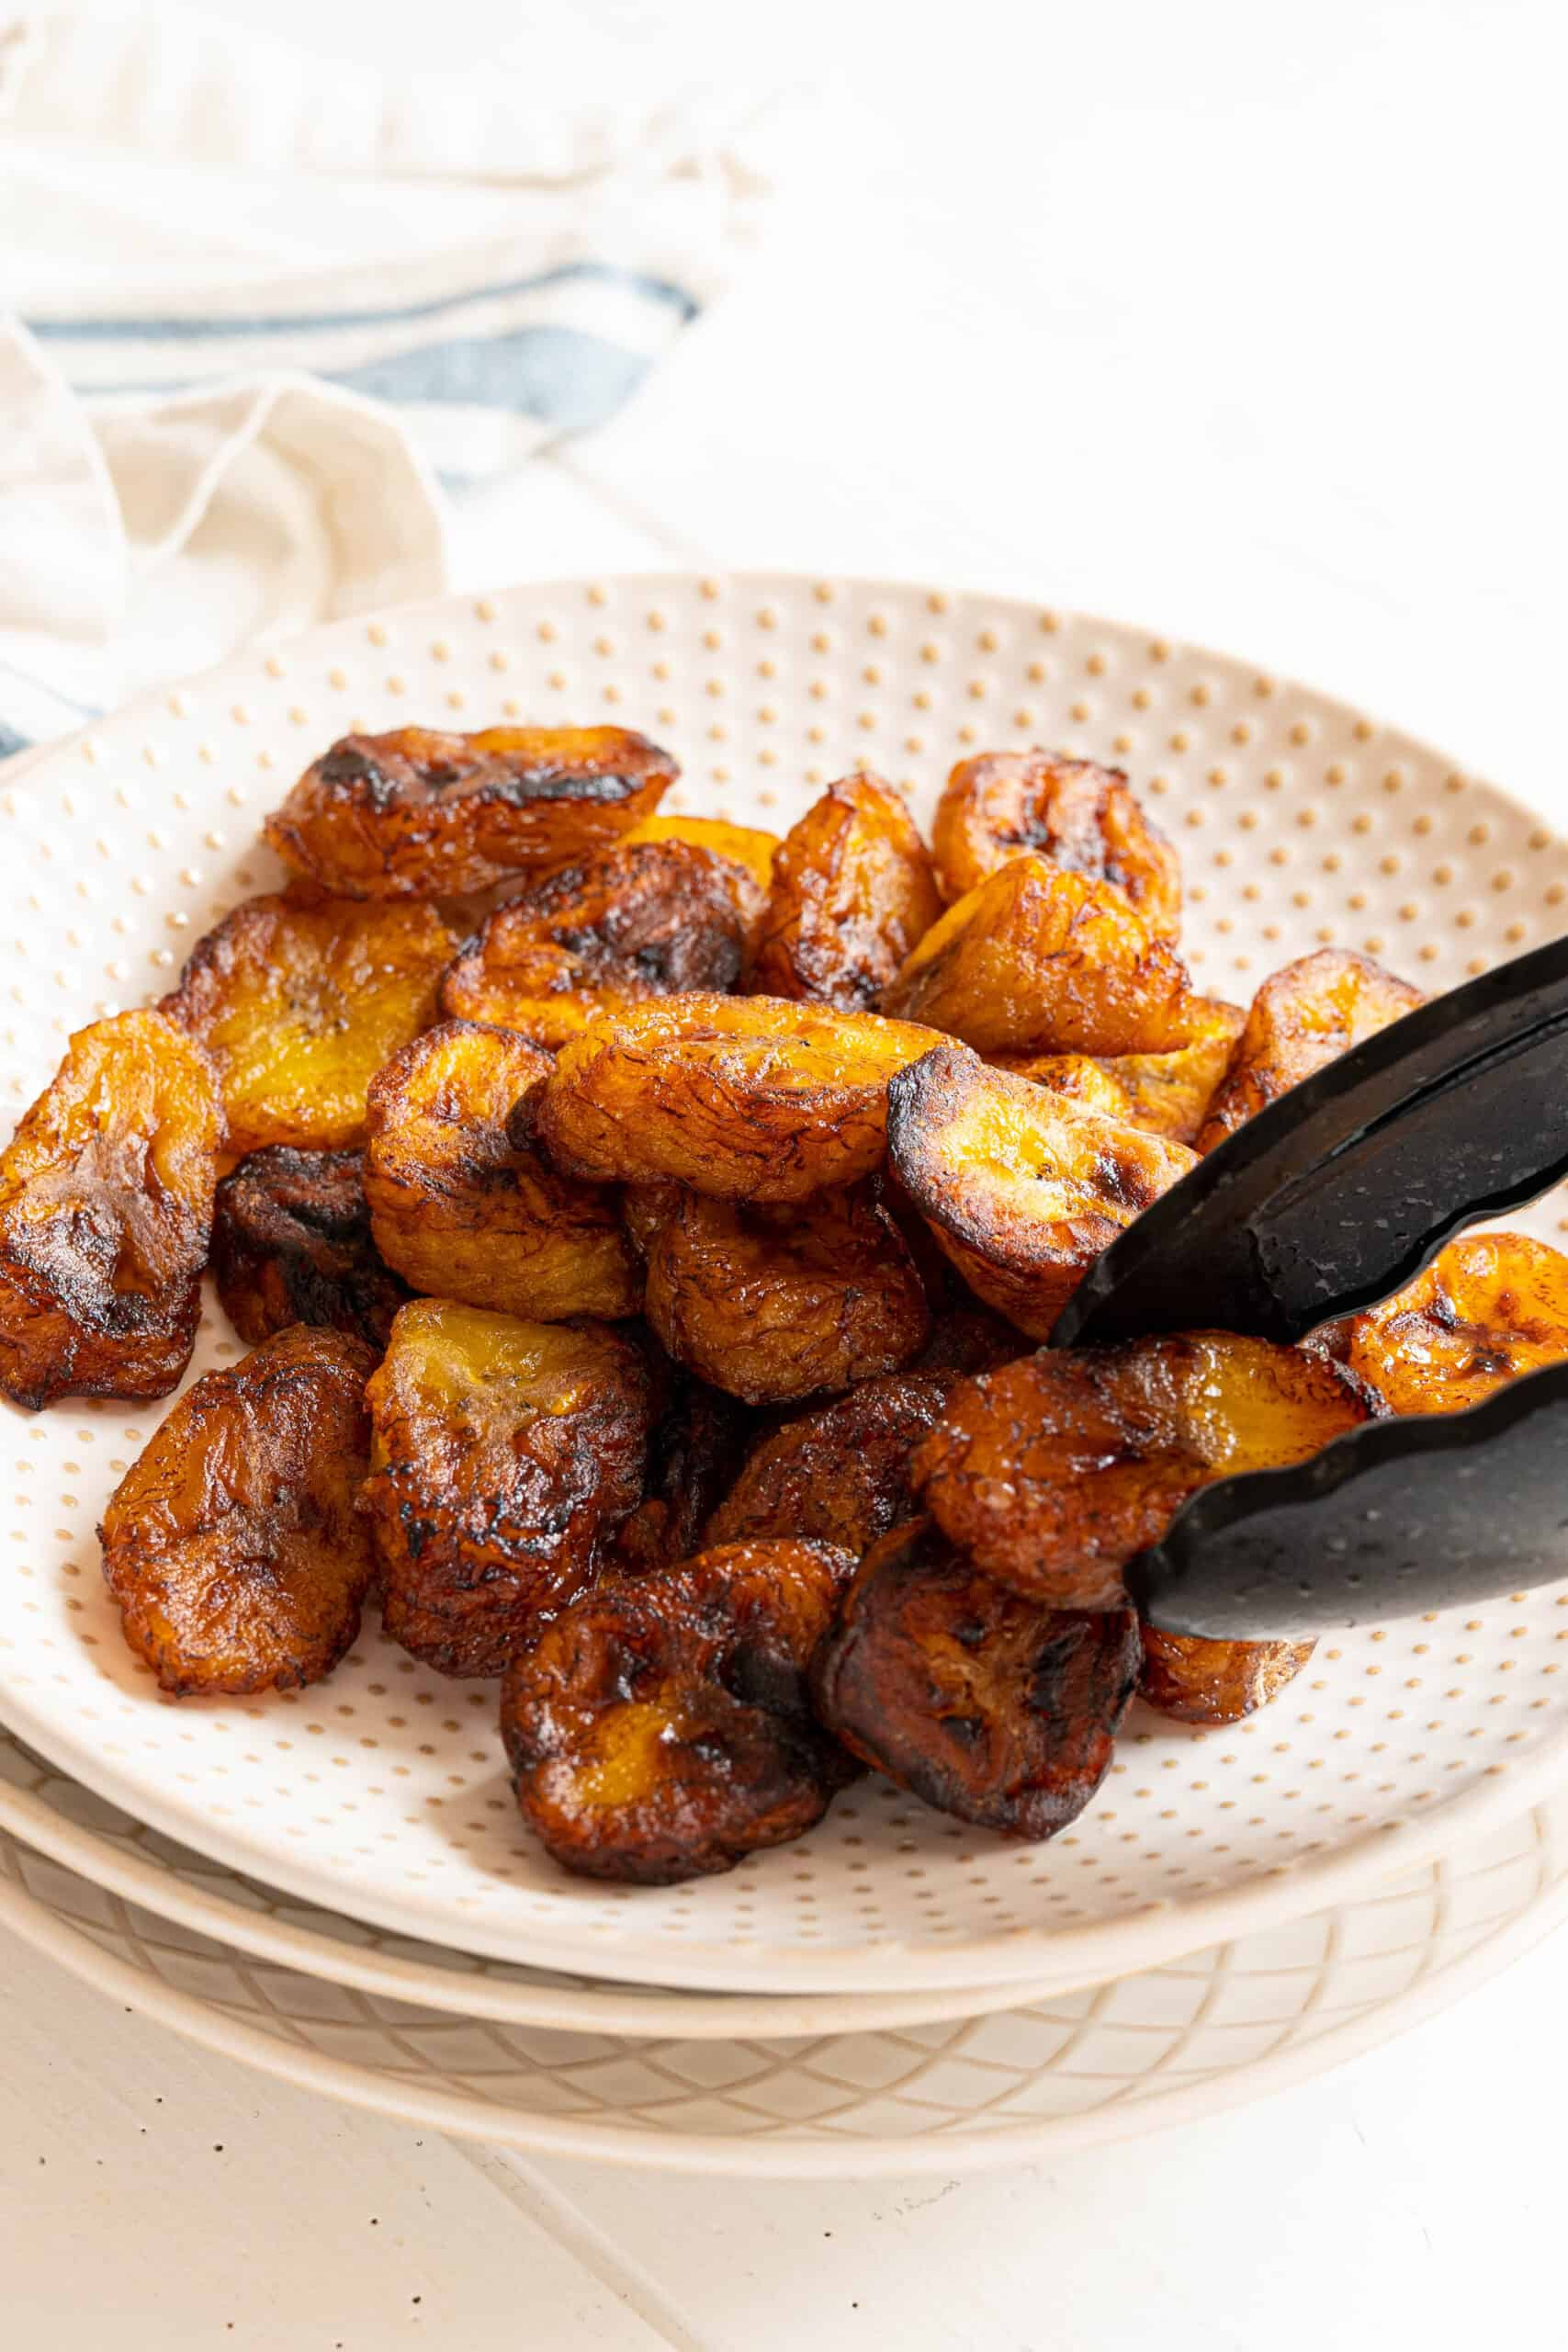 tongs placing a fried plantain on a plate